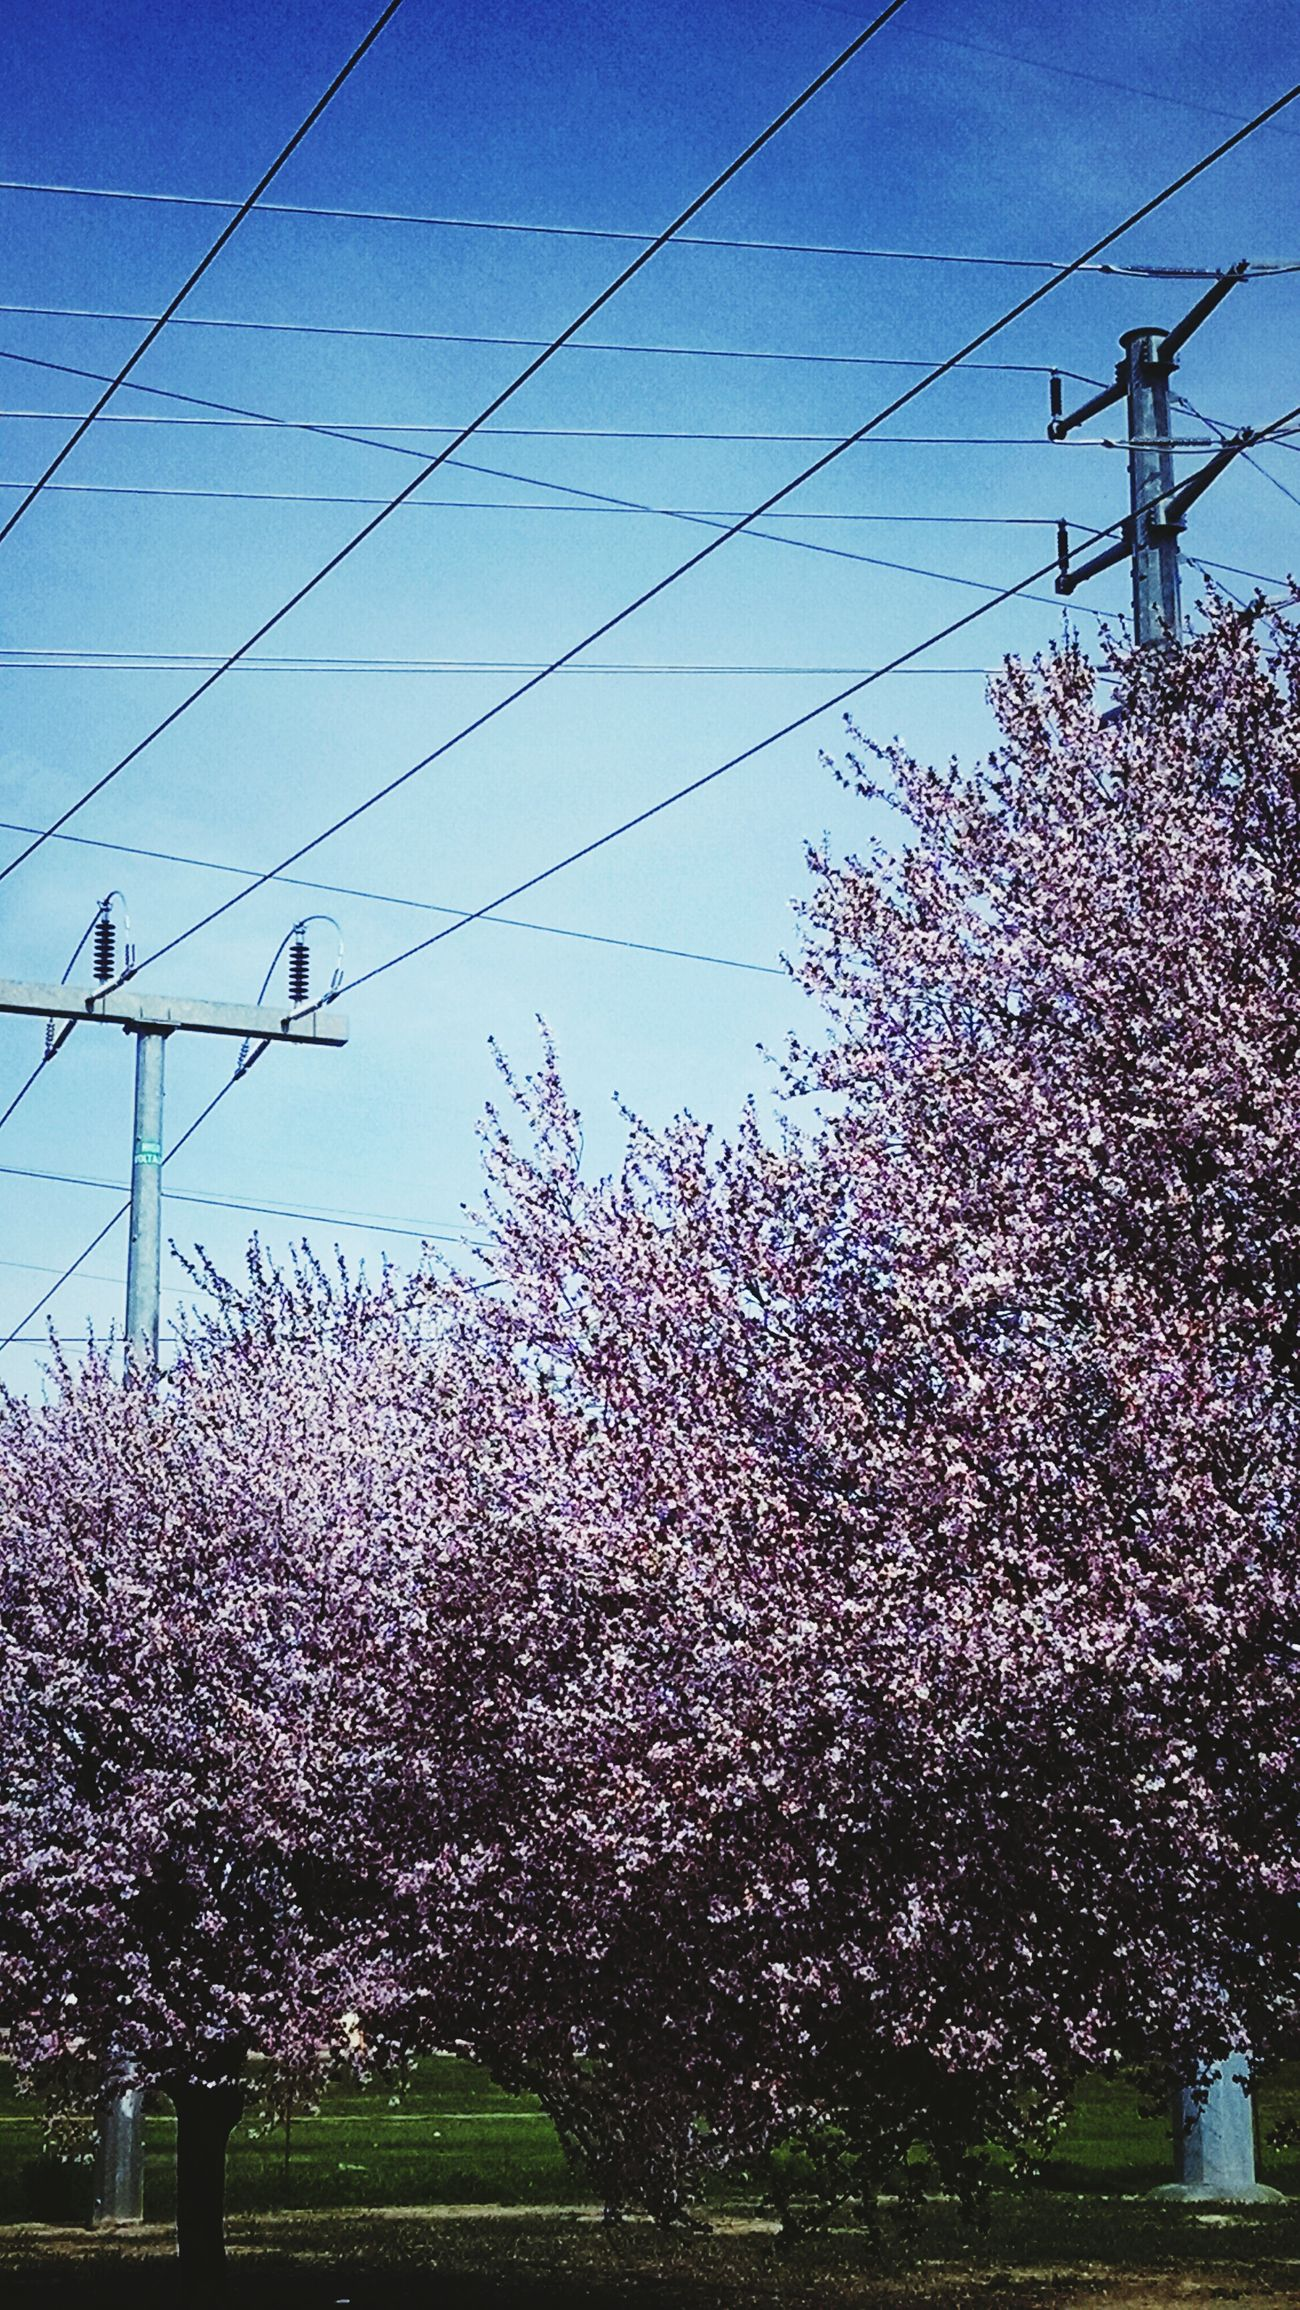 Pastel Power Blooming Trees Taking Photos Openspace Roseville Ca Roseville Roseville, CA Blooming Tree Powerlines Powerlinesaresoscenic Urban Nature UrbanHiking